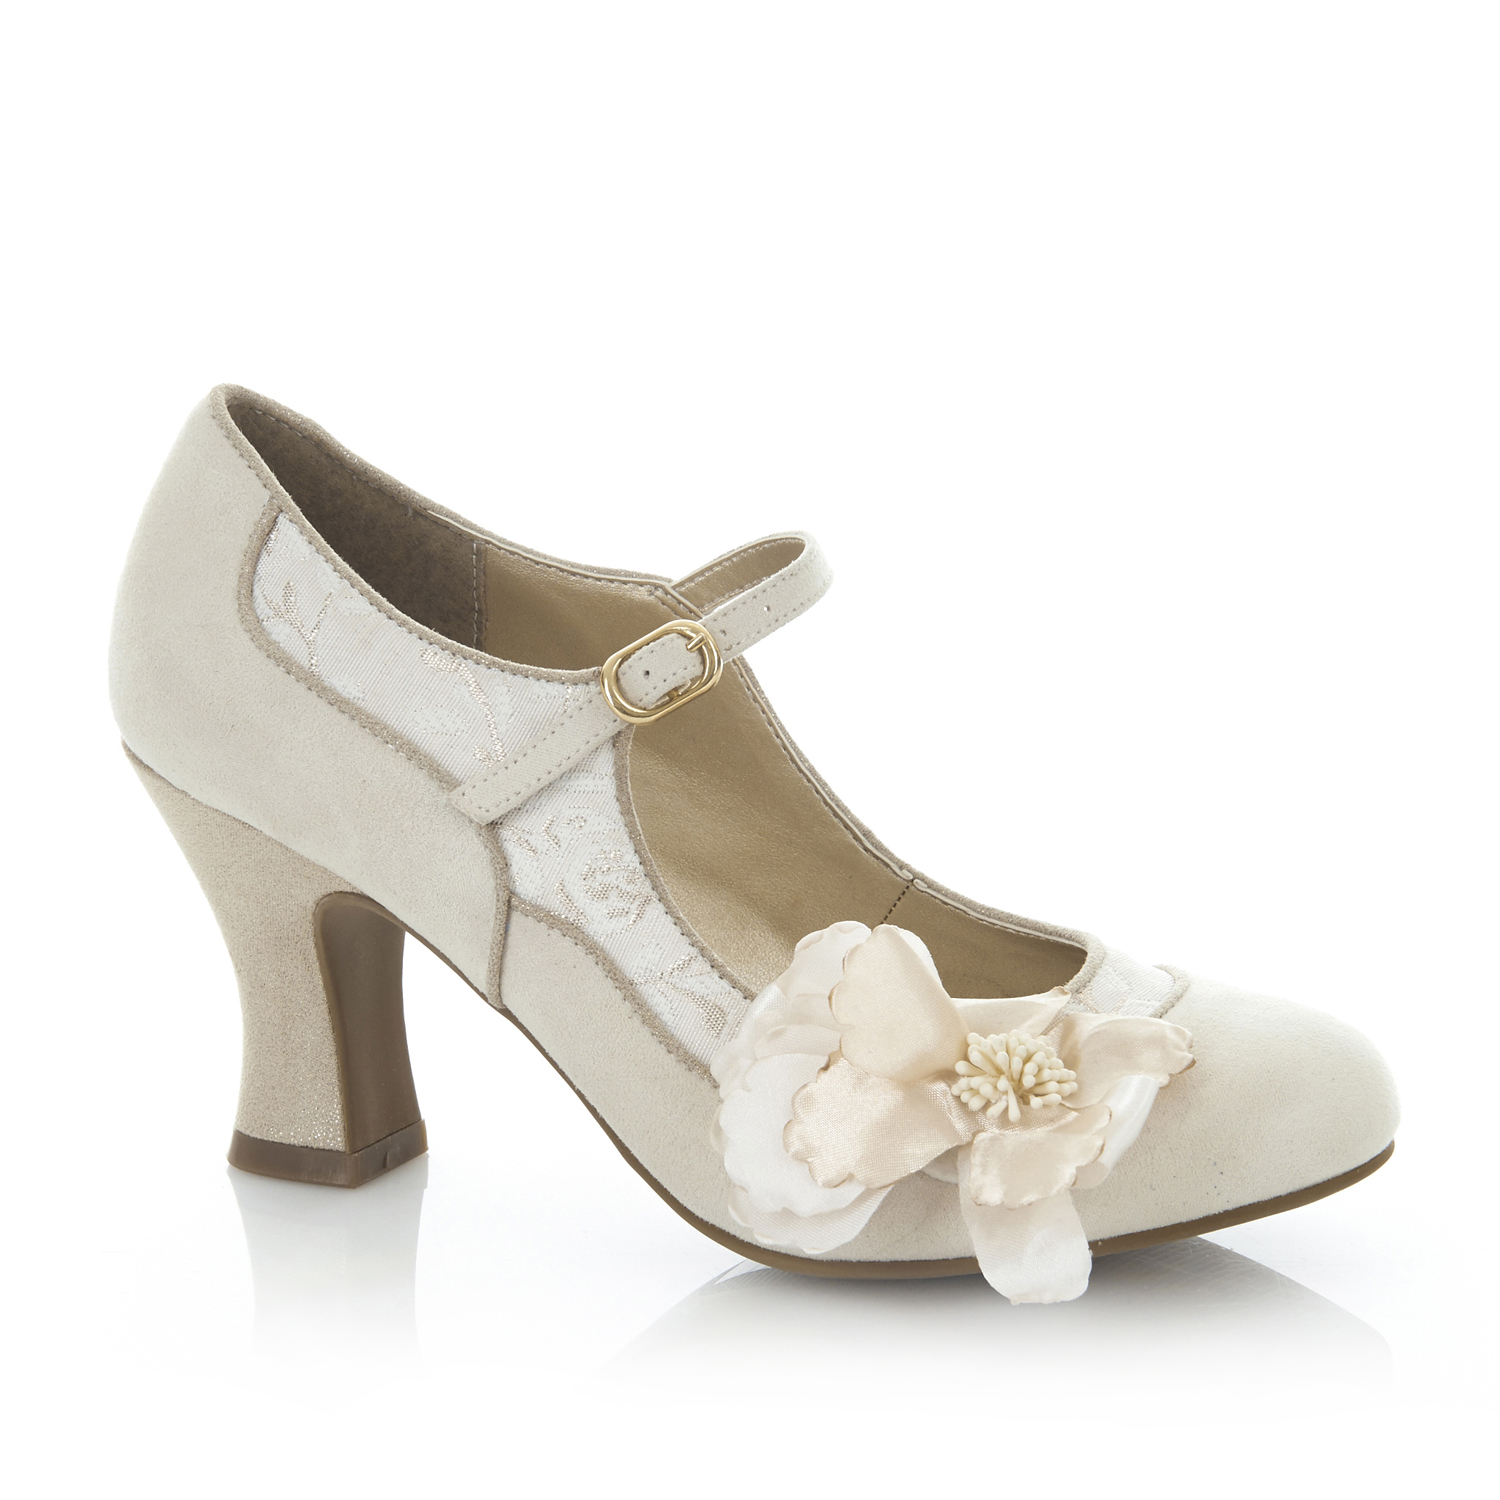 Ruby Shoo Madelaine Mid Heels & Matching Bologna Bag UK 3-9 Bridal Cream White